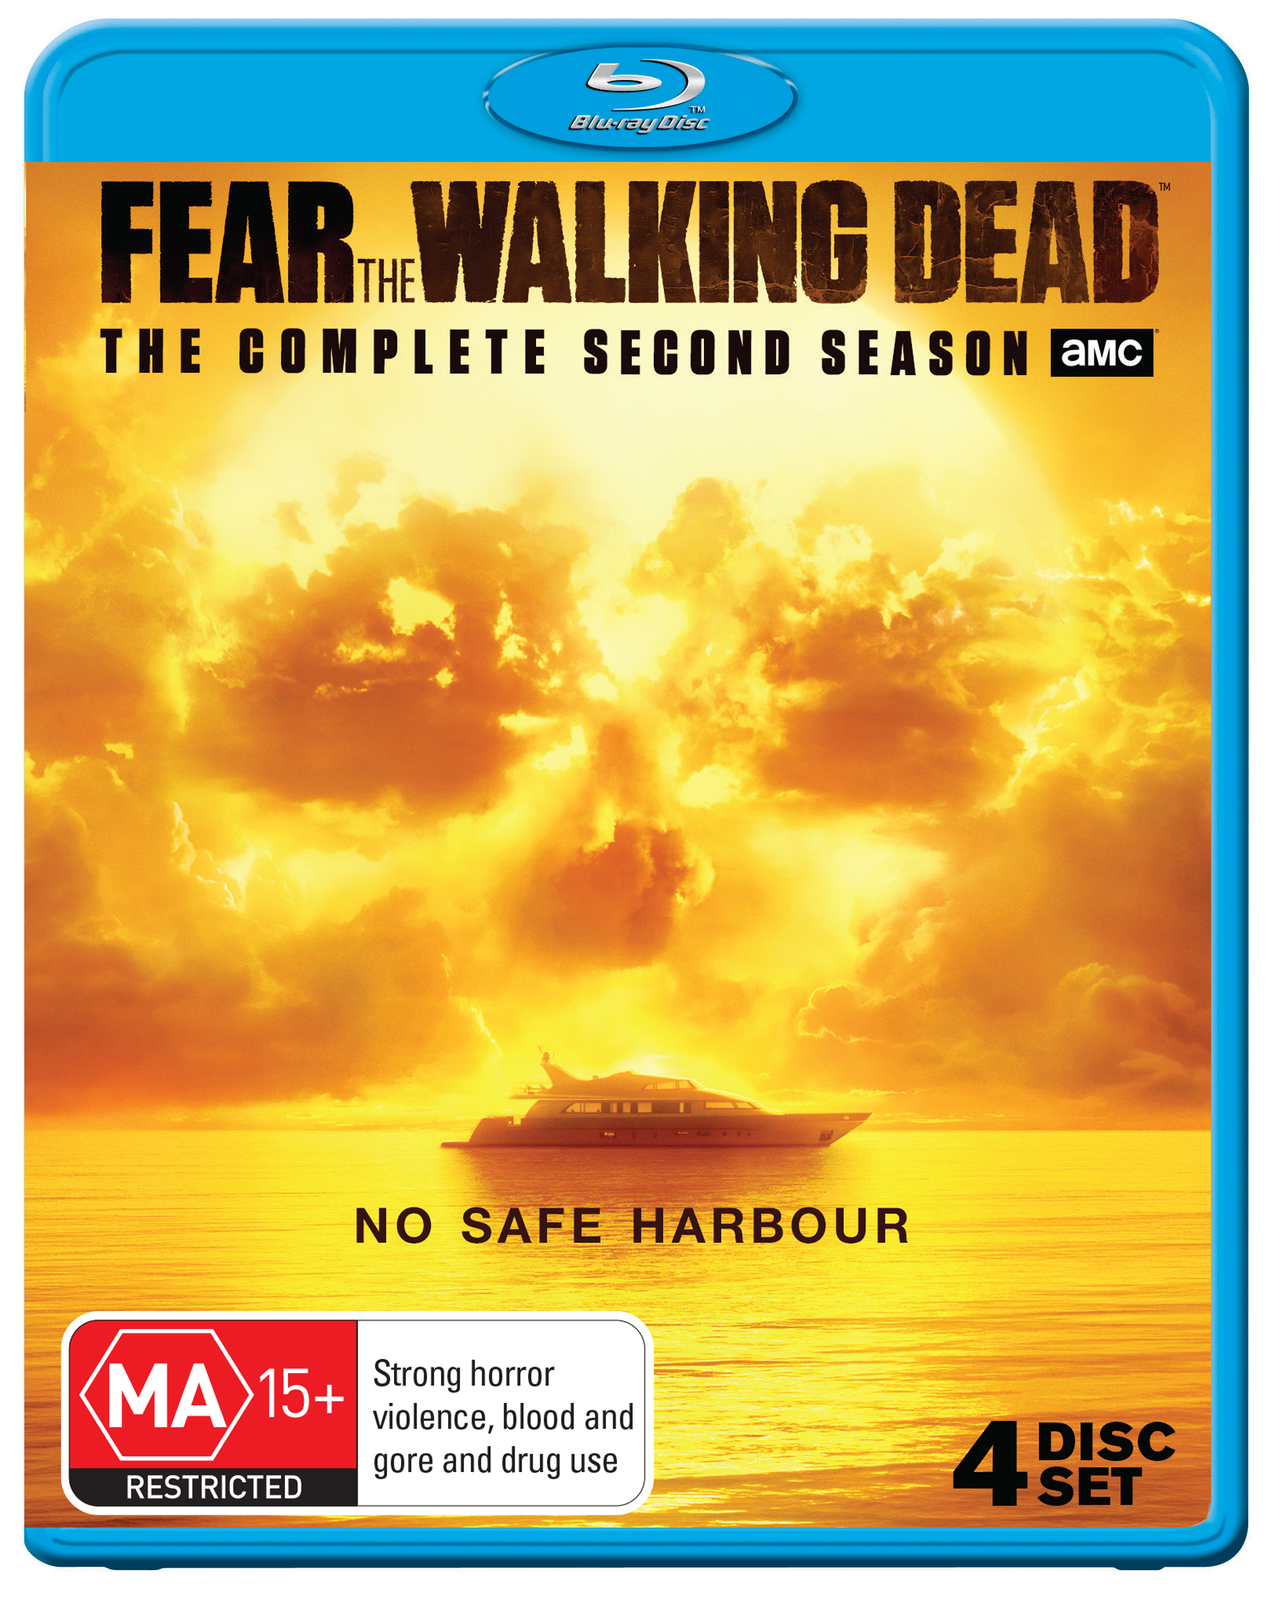 Fear The Walking Dead - The Complete Second Season on Blu-ray image